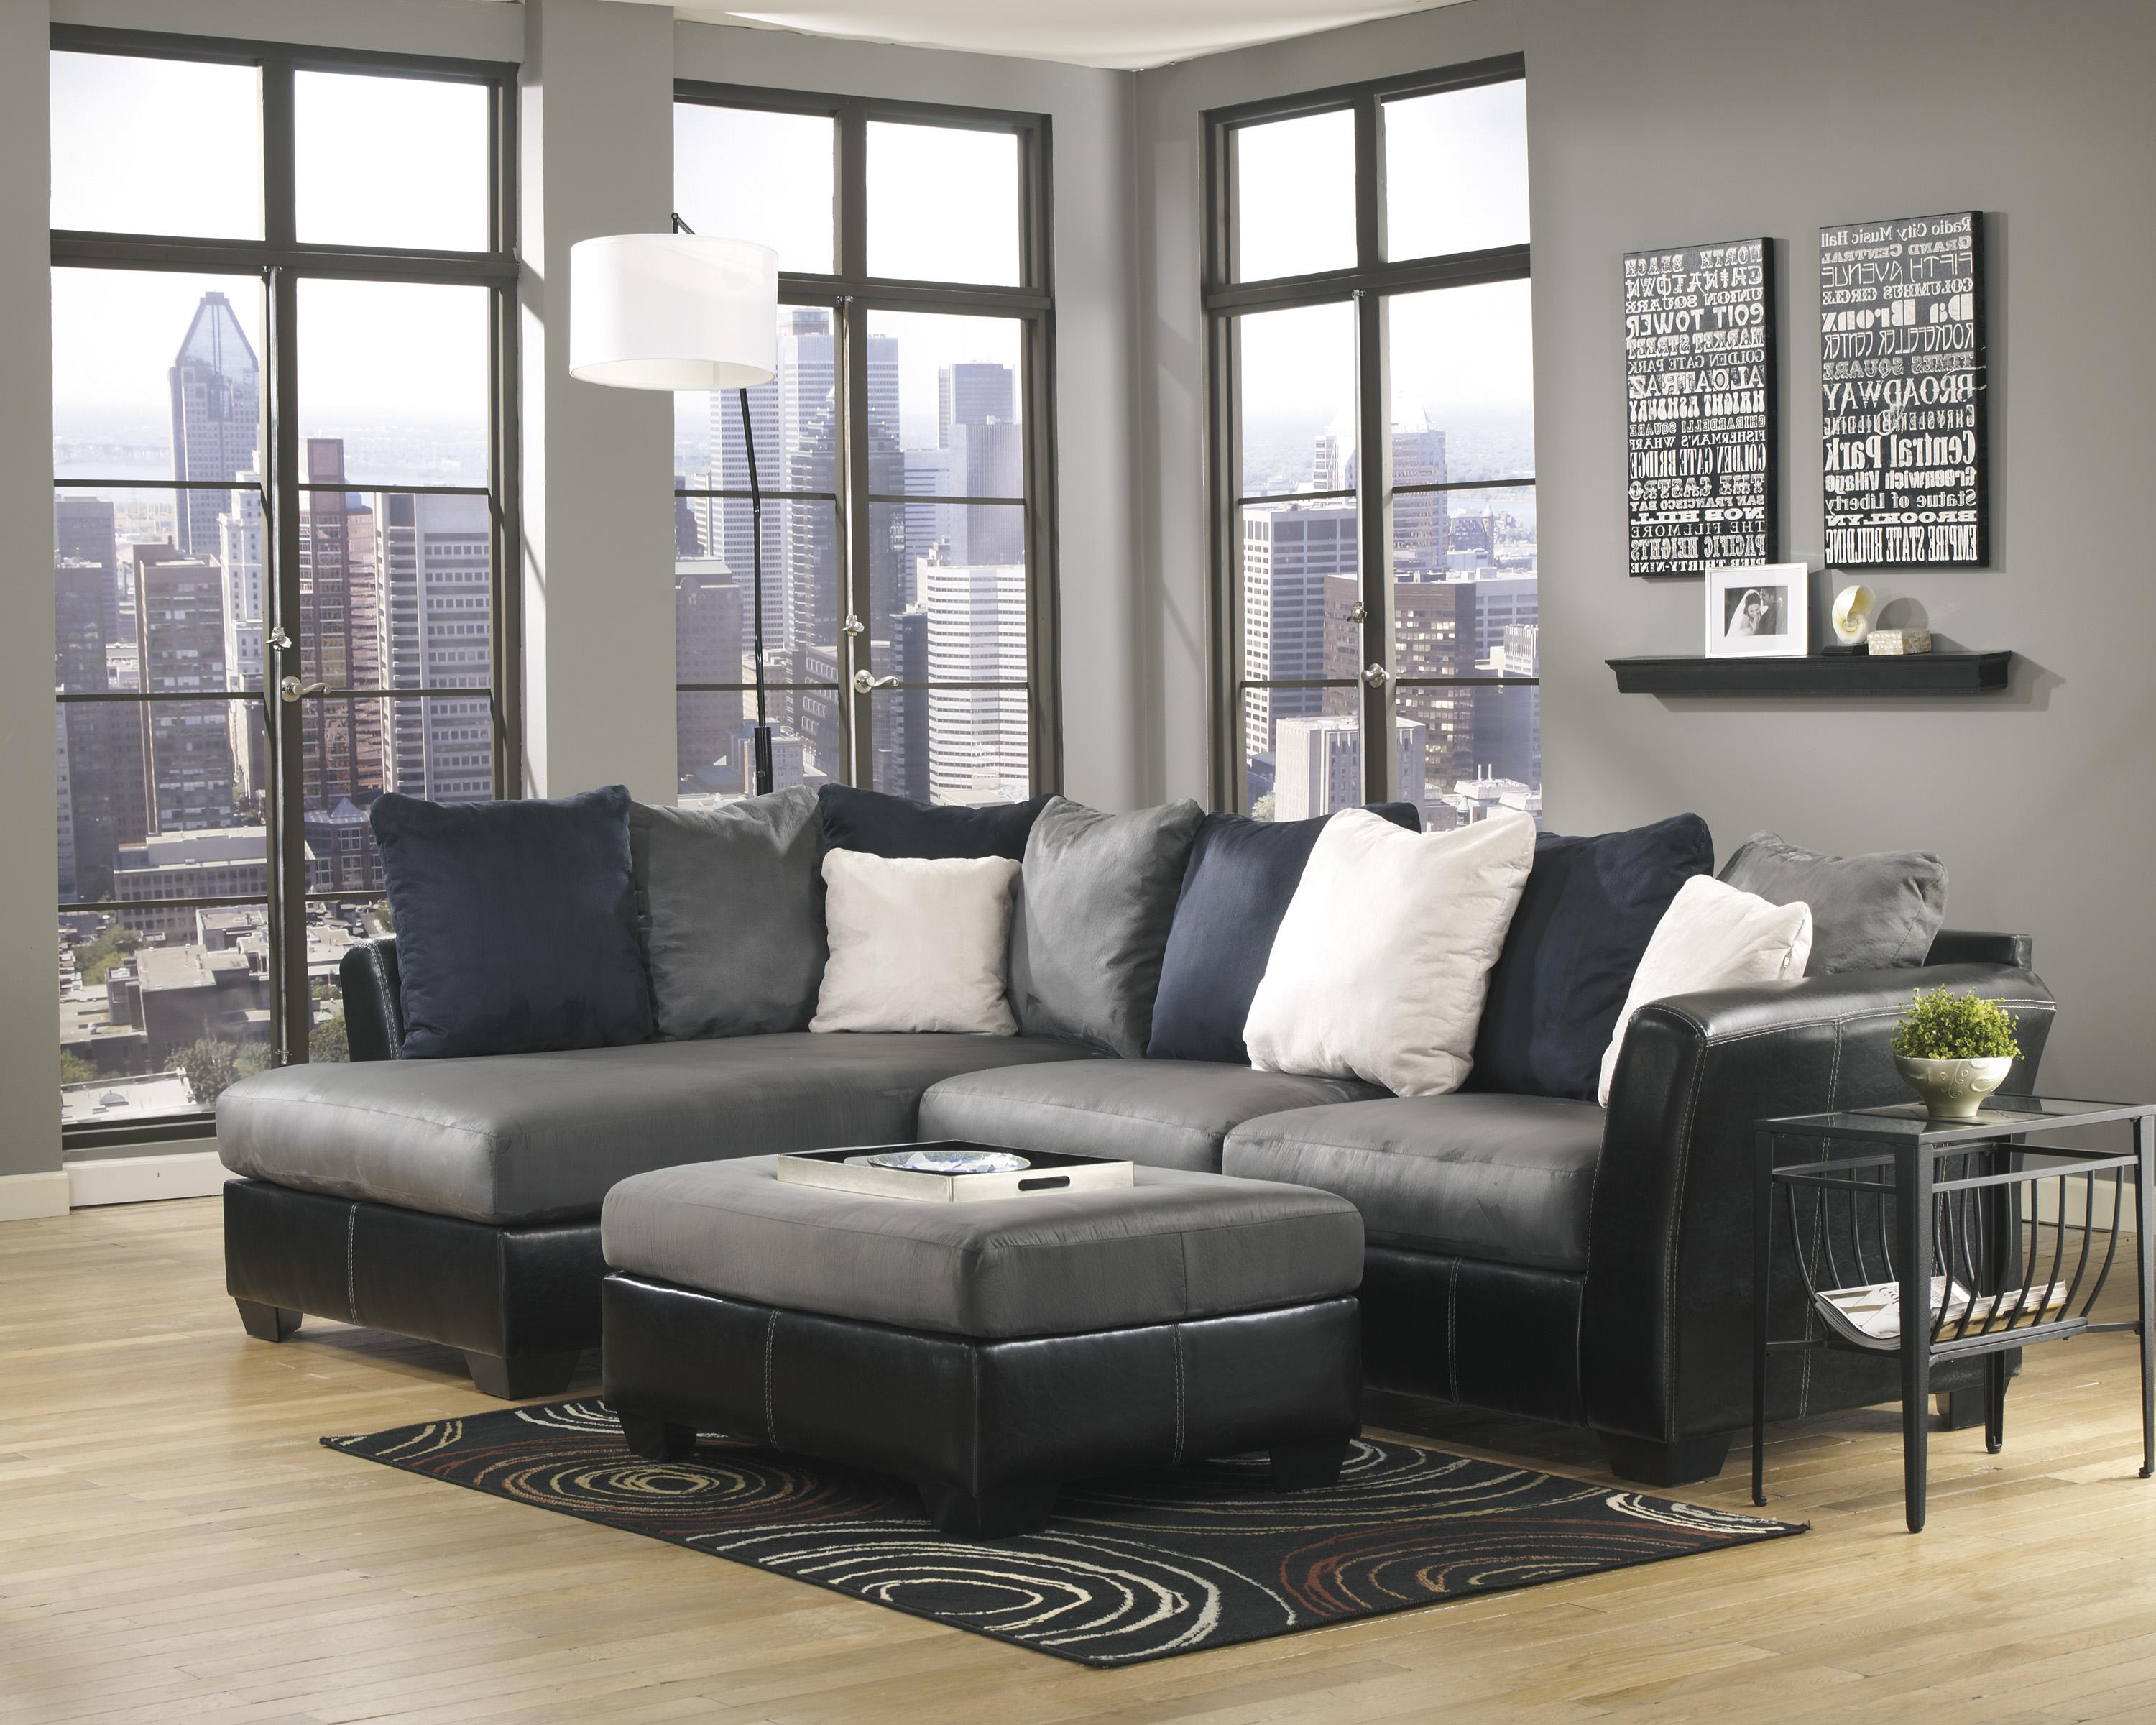 Ashley/Benchcraft Masoli - Cobblestone Stationary Living Room Group - Item Number: 14200 Living Room Group 5